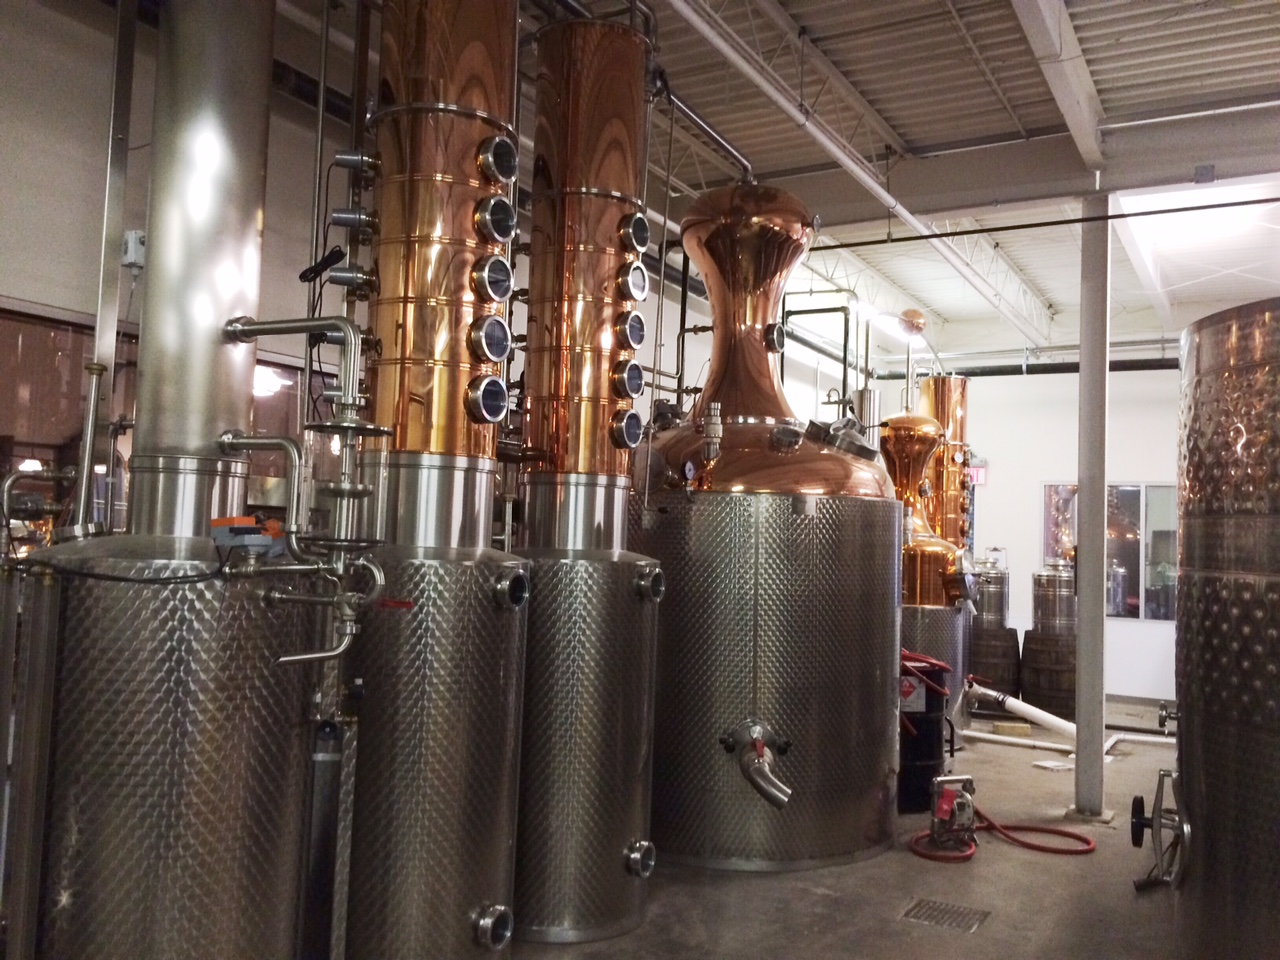 D.C.'s newest distillery is steeped in history